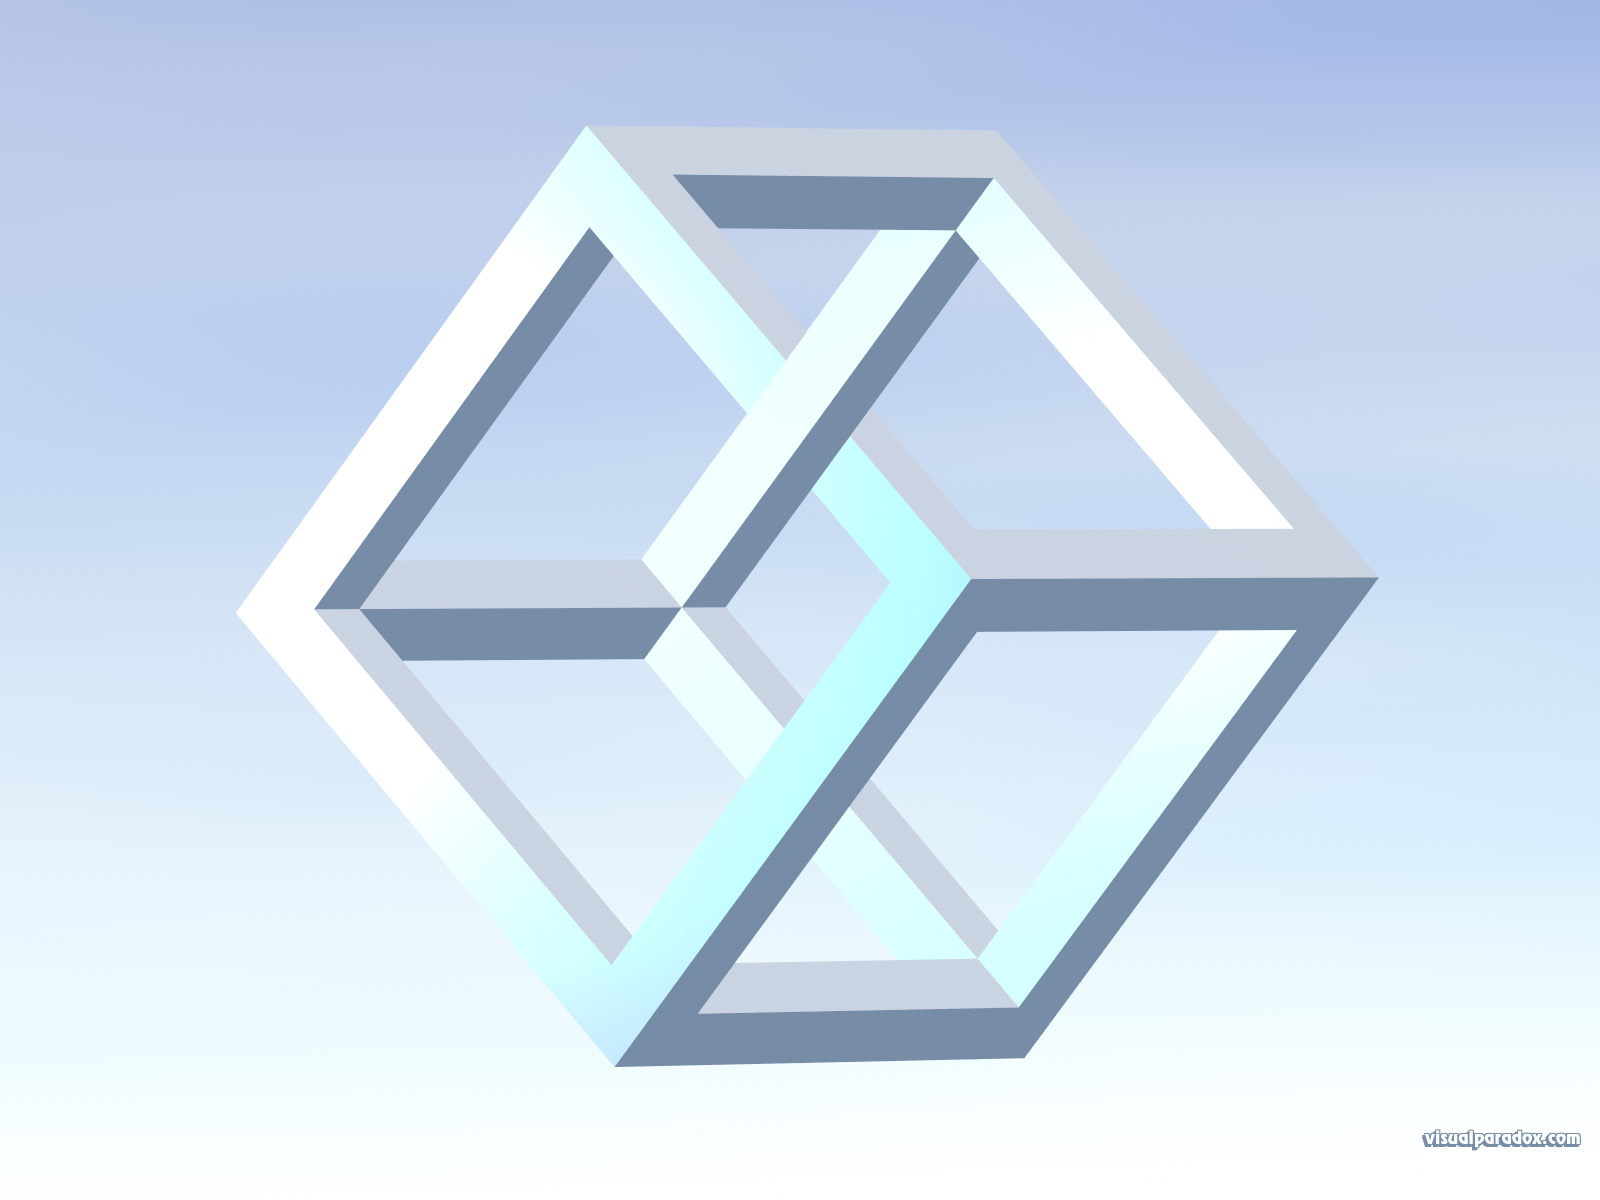 optical illusion illusions 3d cube paradox impossible visual box escher shape triangle why they wallpapers visualparadox